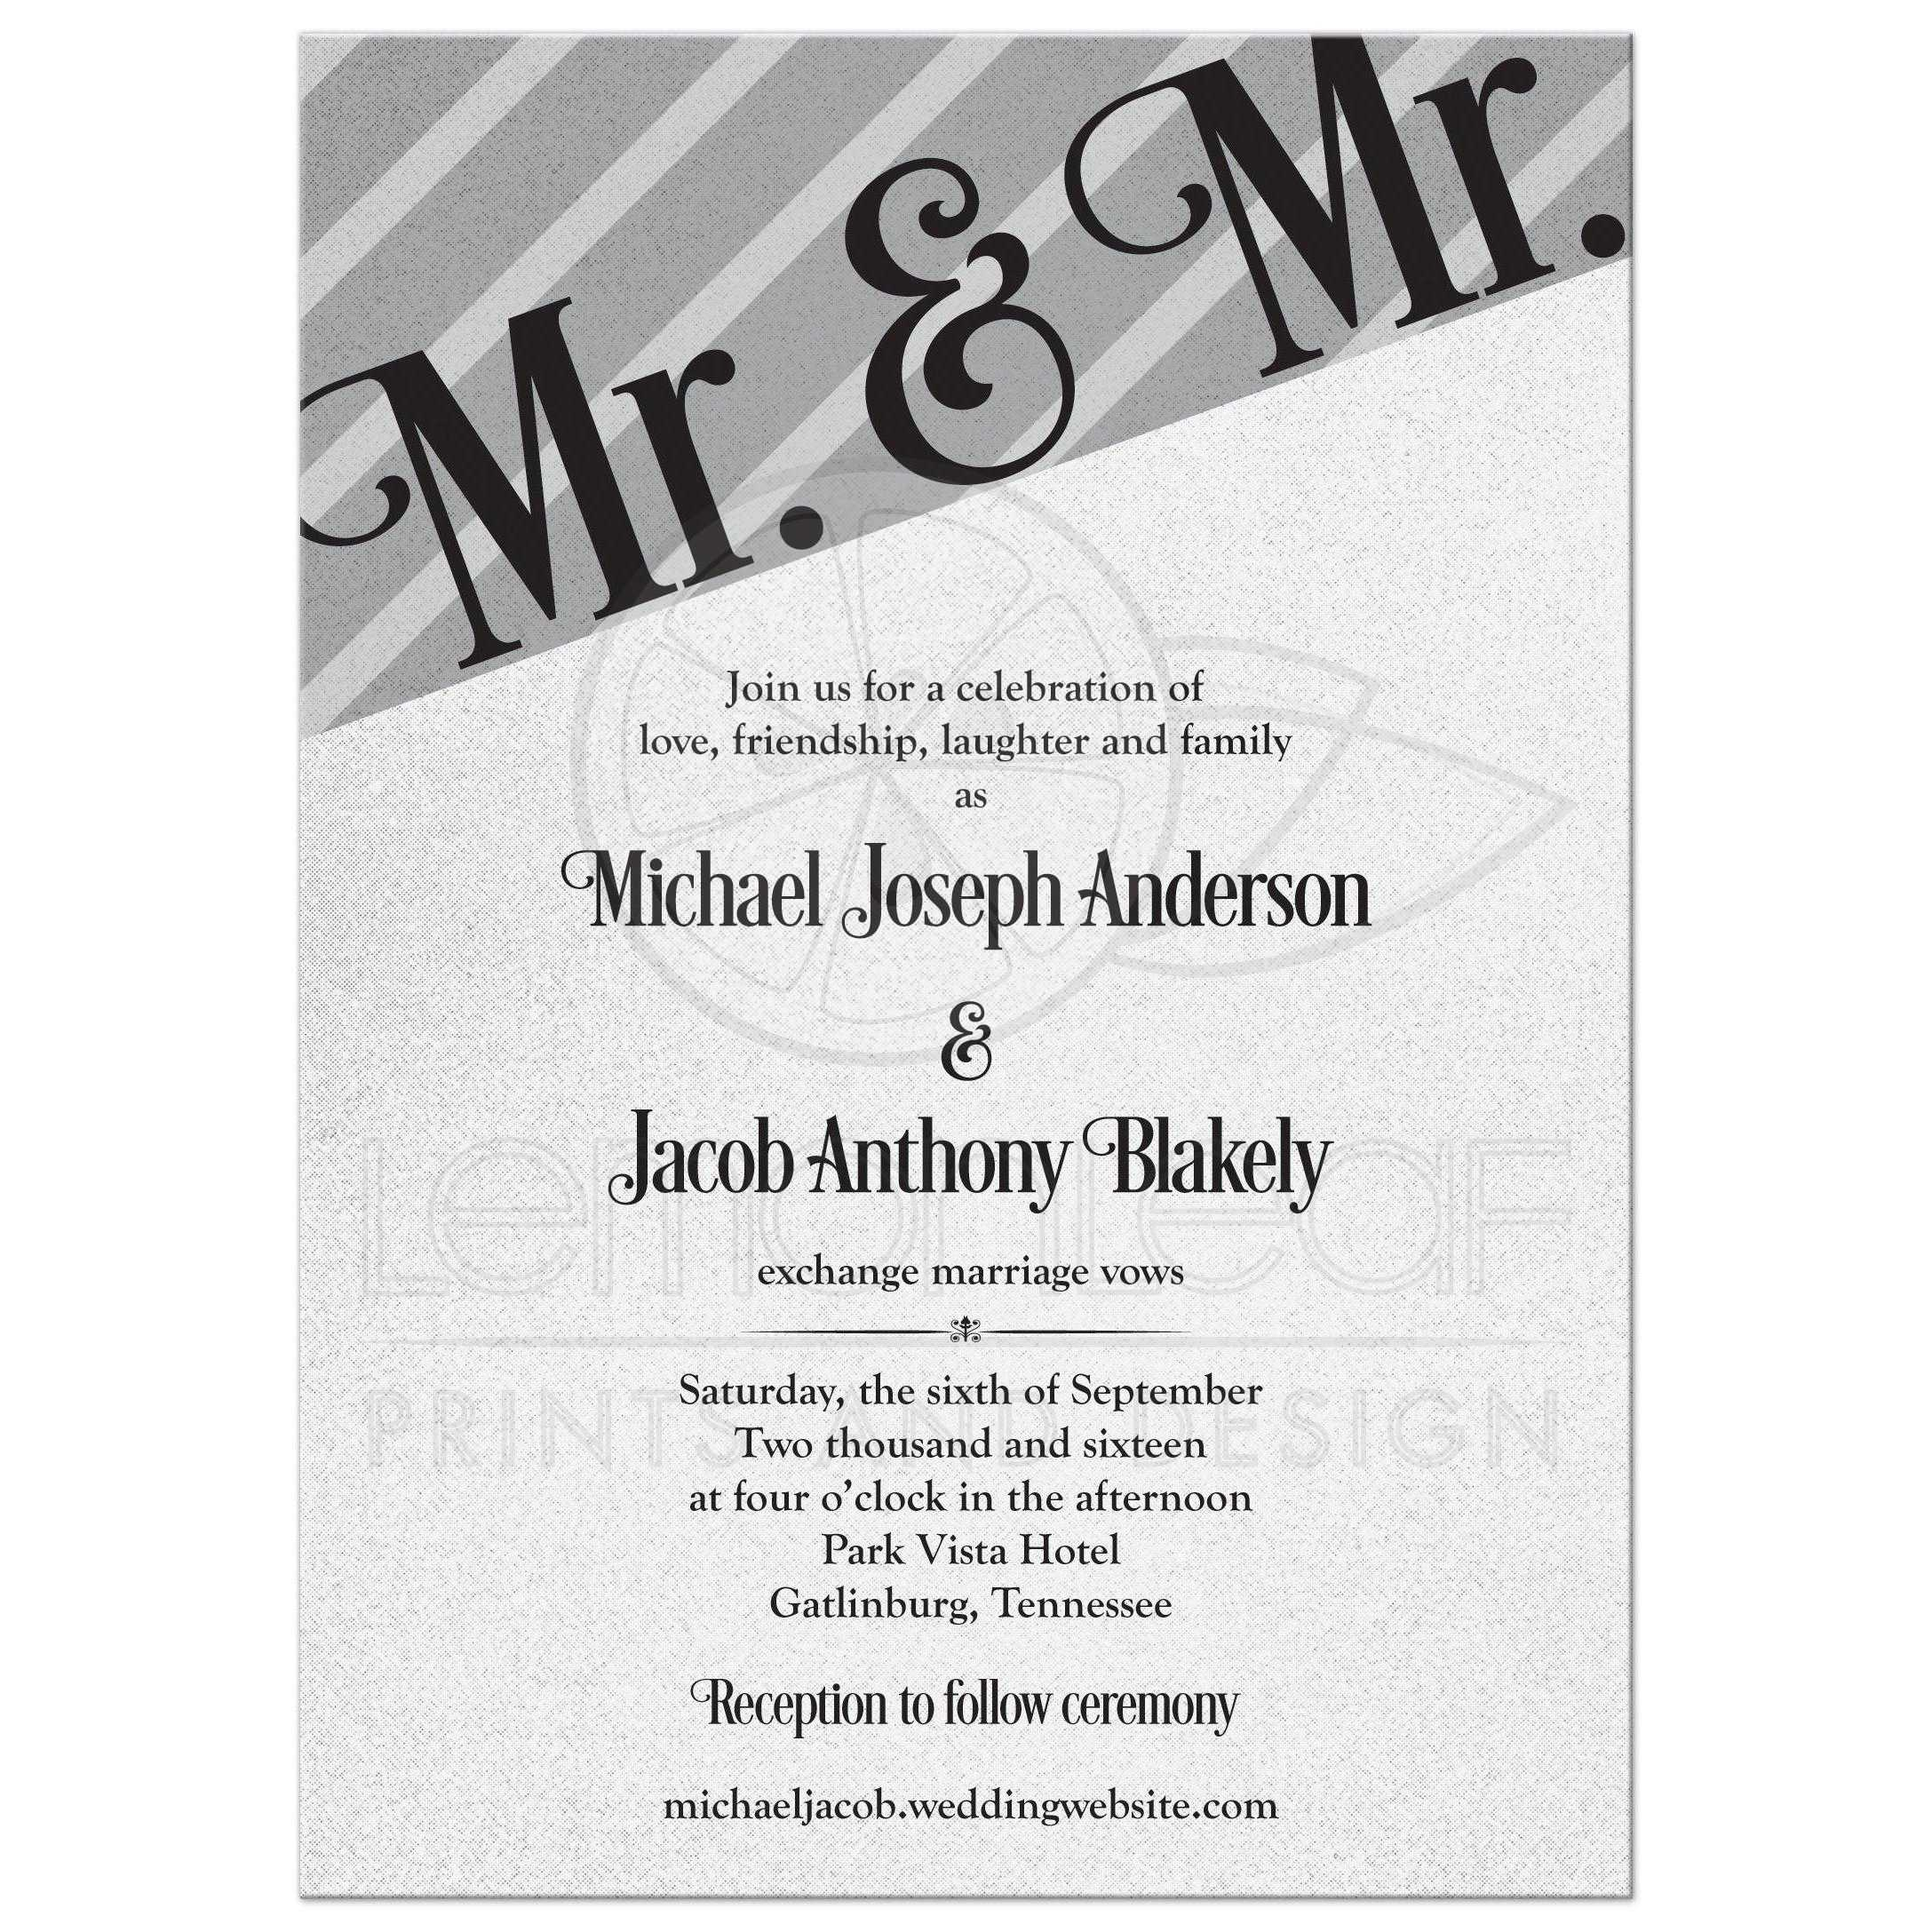 Silver grey (gray) and black Mr and Mr gay wedding invitation. This geometric style gay wedding invitation is elegant and modern. This is a great wedding invita